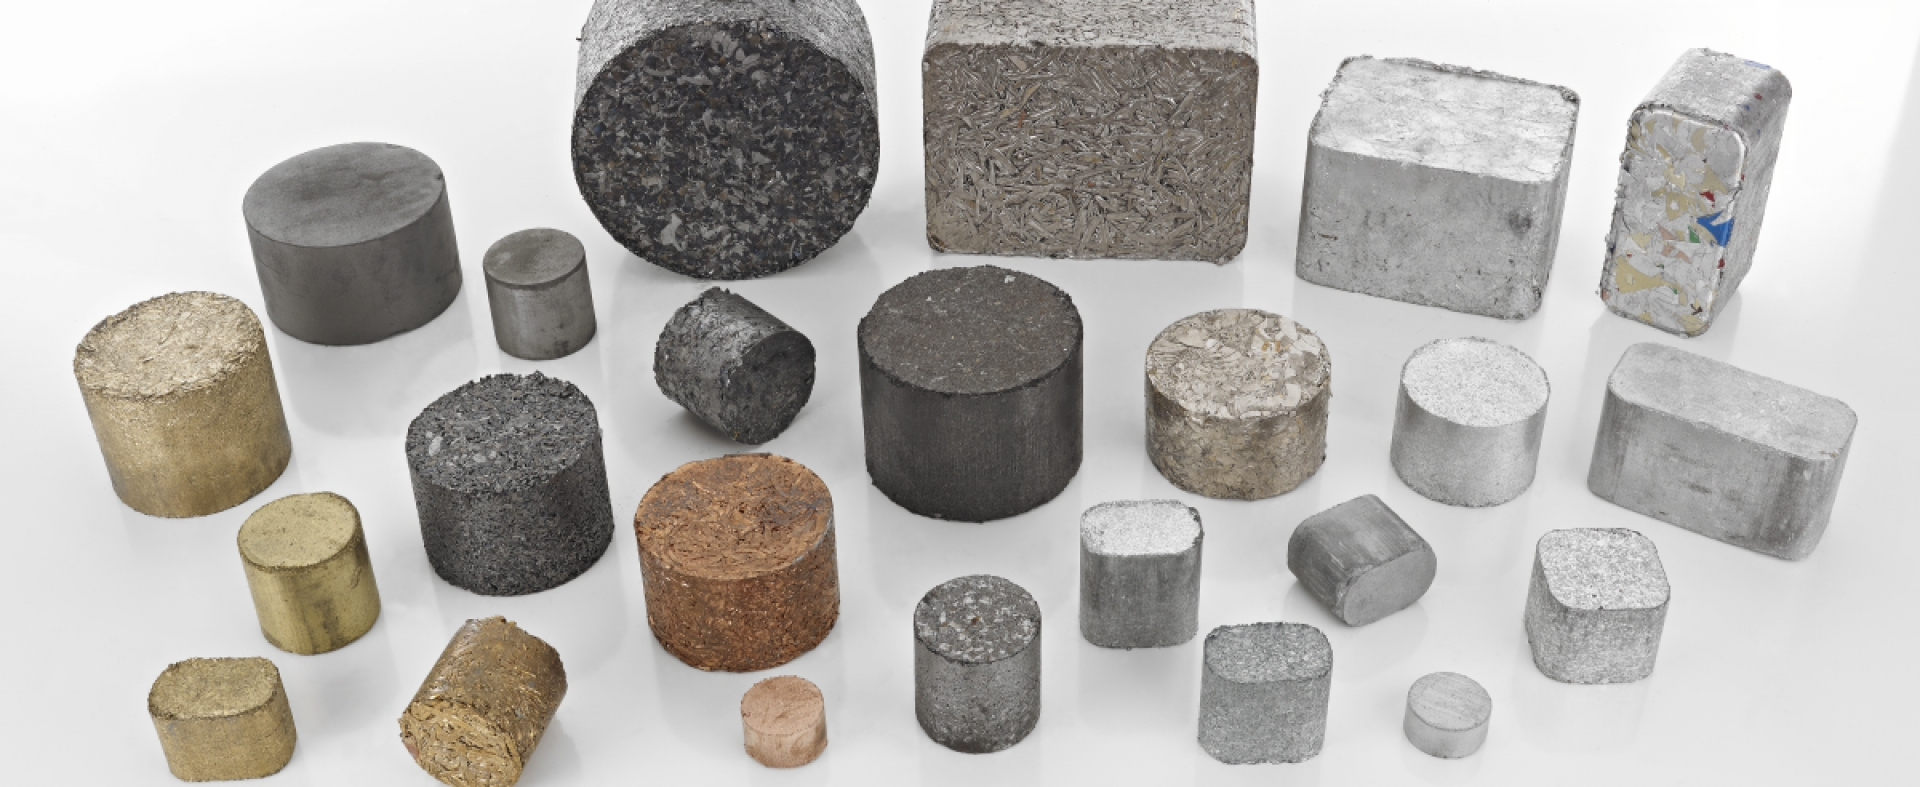 Briquettes from metal